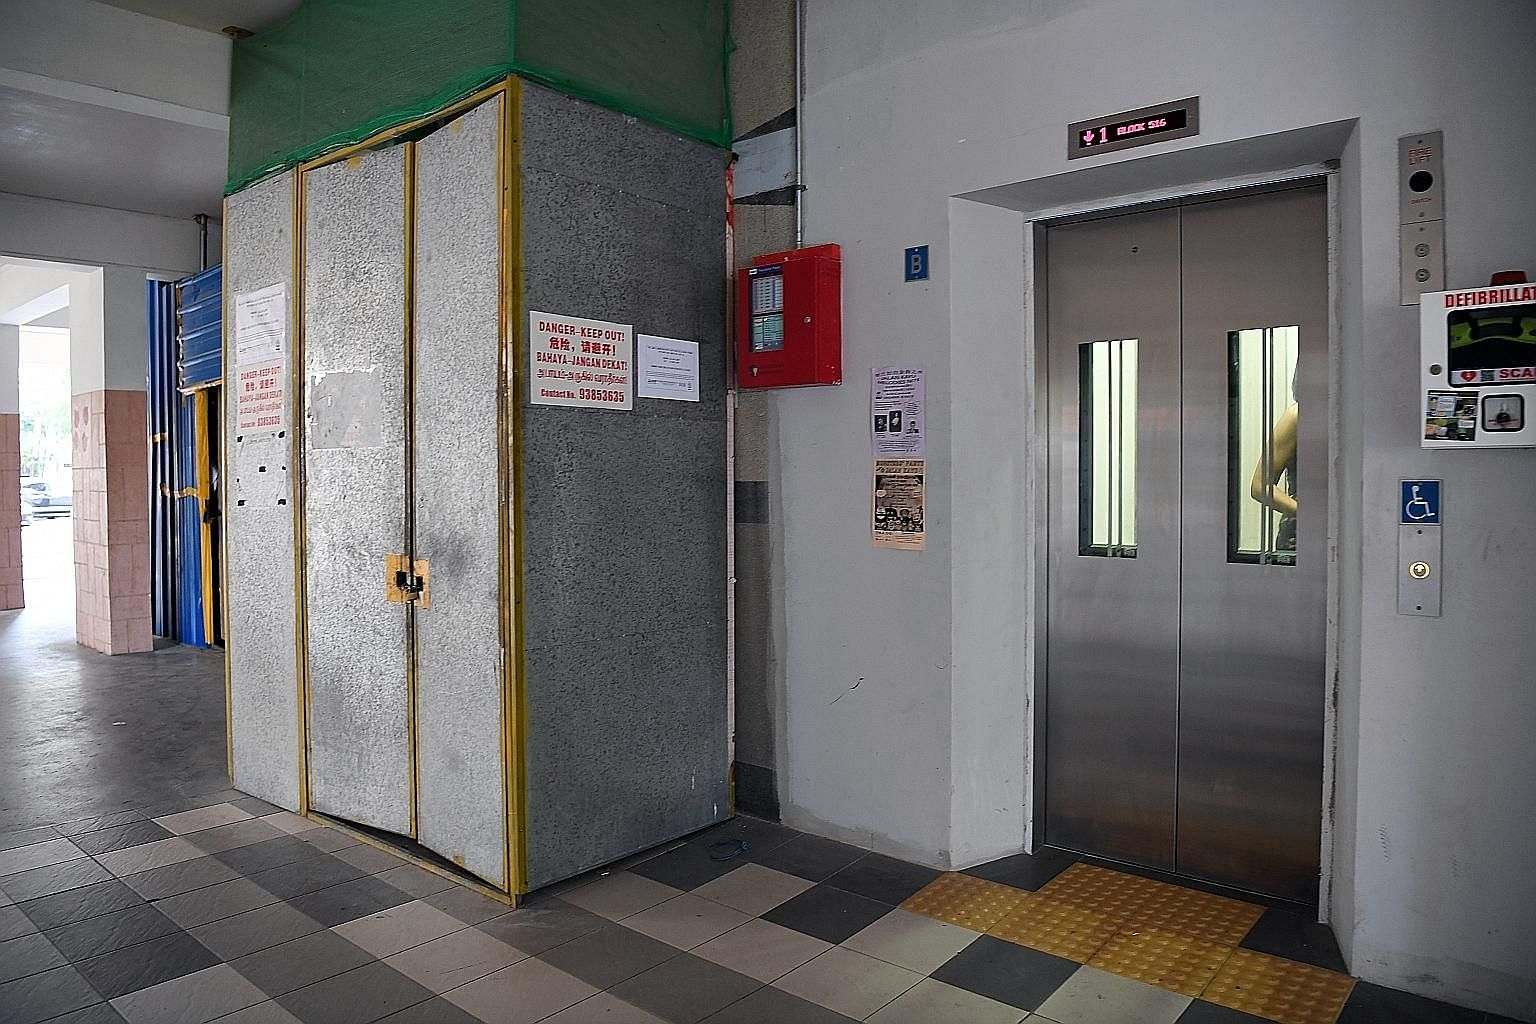 Lift upgrading taking place at an HDB block in Serangoon North last October. To date, contracts for the enhancement of 5,198 lifts in total within PAP town councils have been awarded, with a value of $107 million.